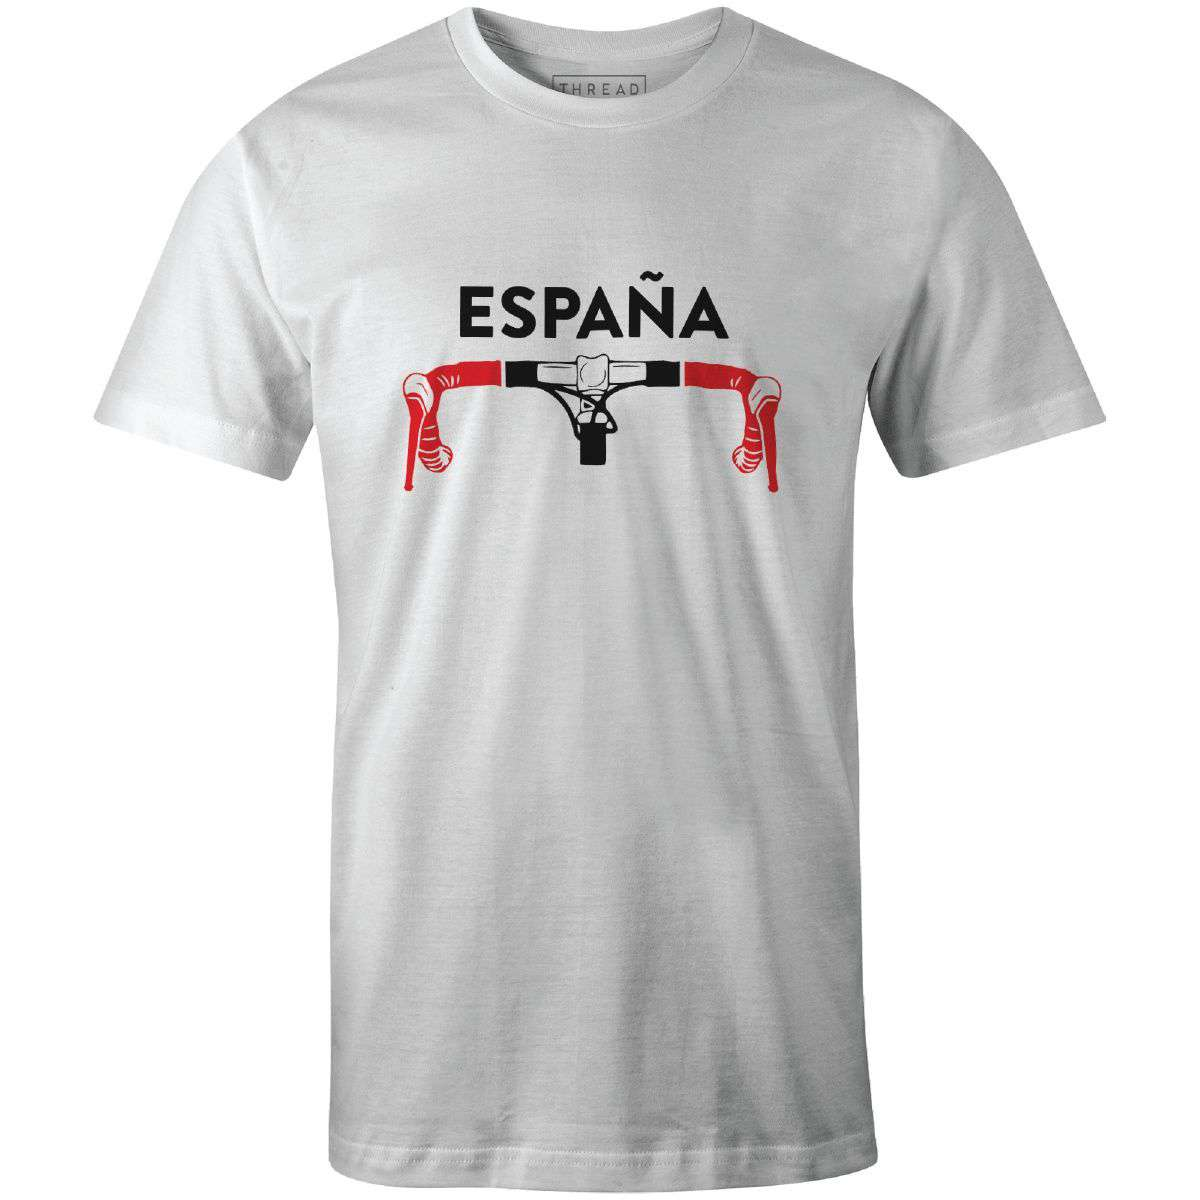 EspañaThread+Spoke - THREAD+SPOKE | MTB APPAREL | ROAD BIKING T-SHIRTS | BICYCLE T SHIRTS |